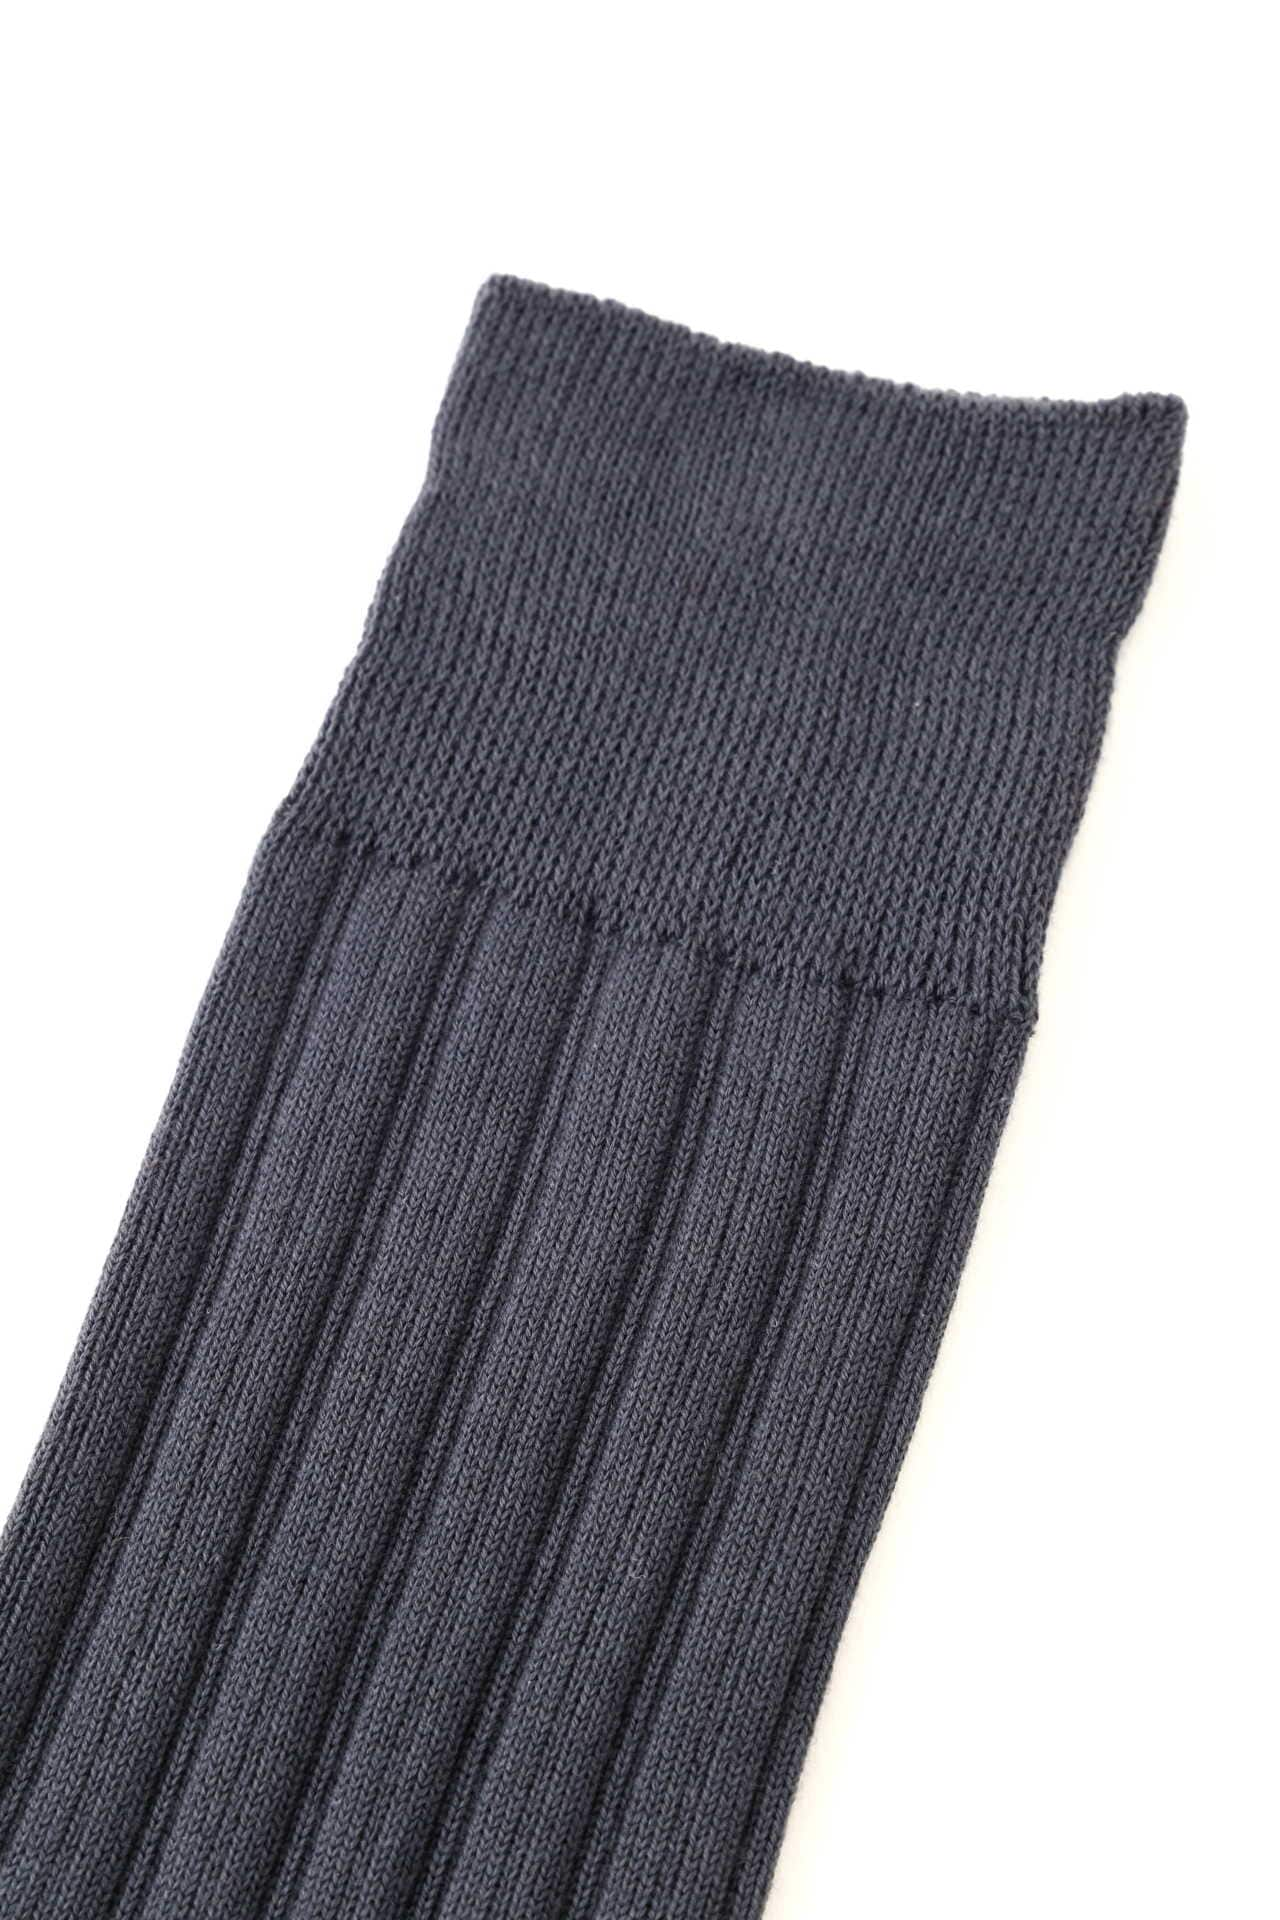 COTTON RIB SOCK4